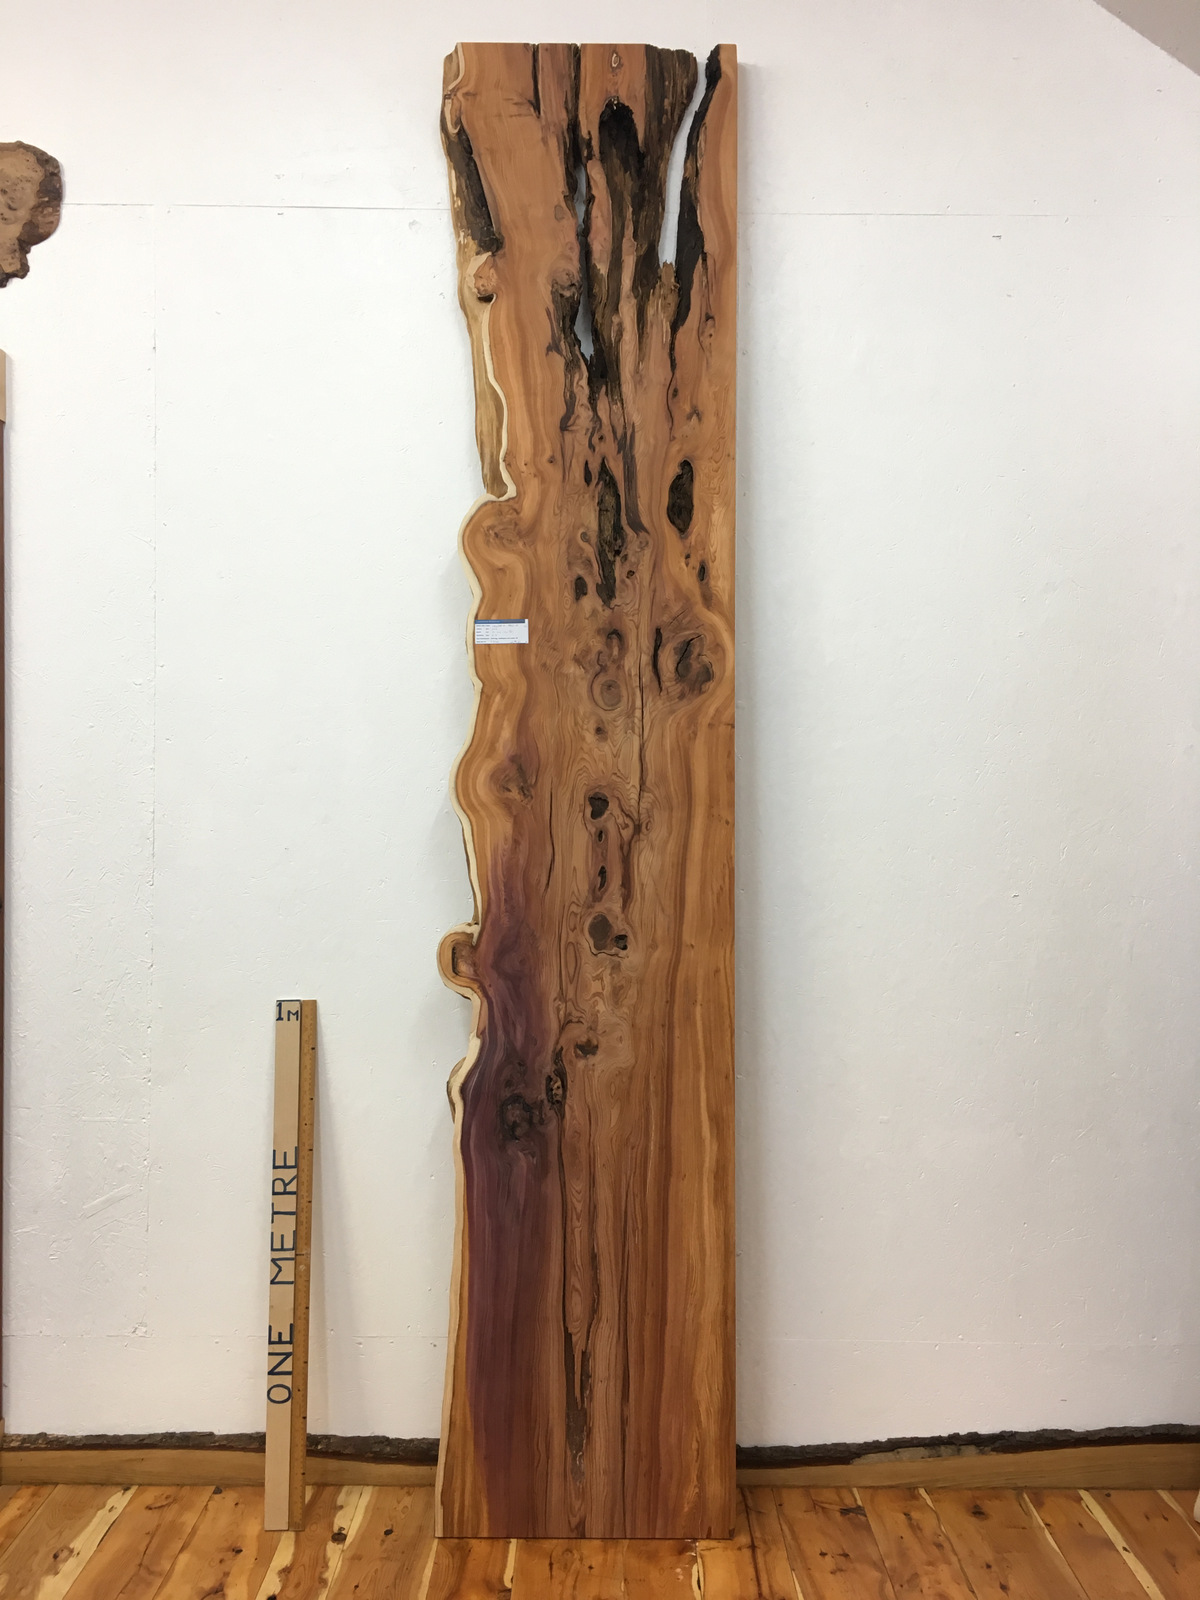 YEW Single Waney Natural Live Edge Board 1462-8